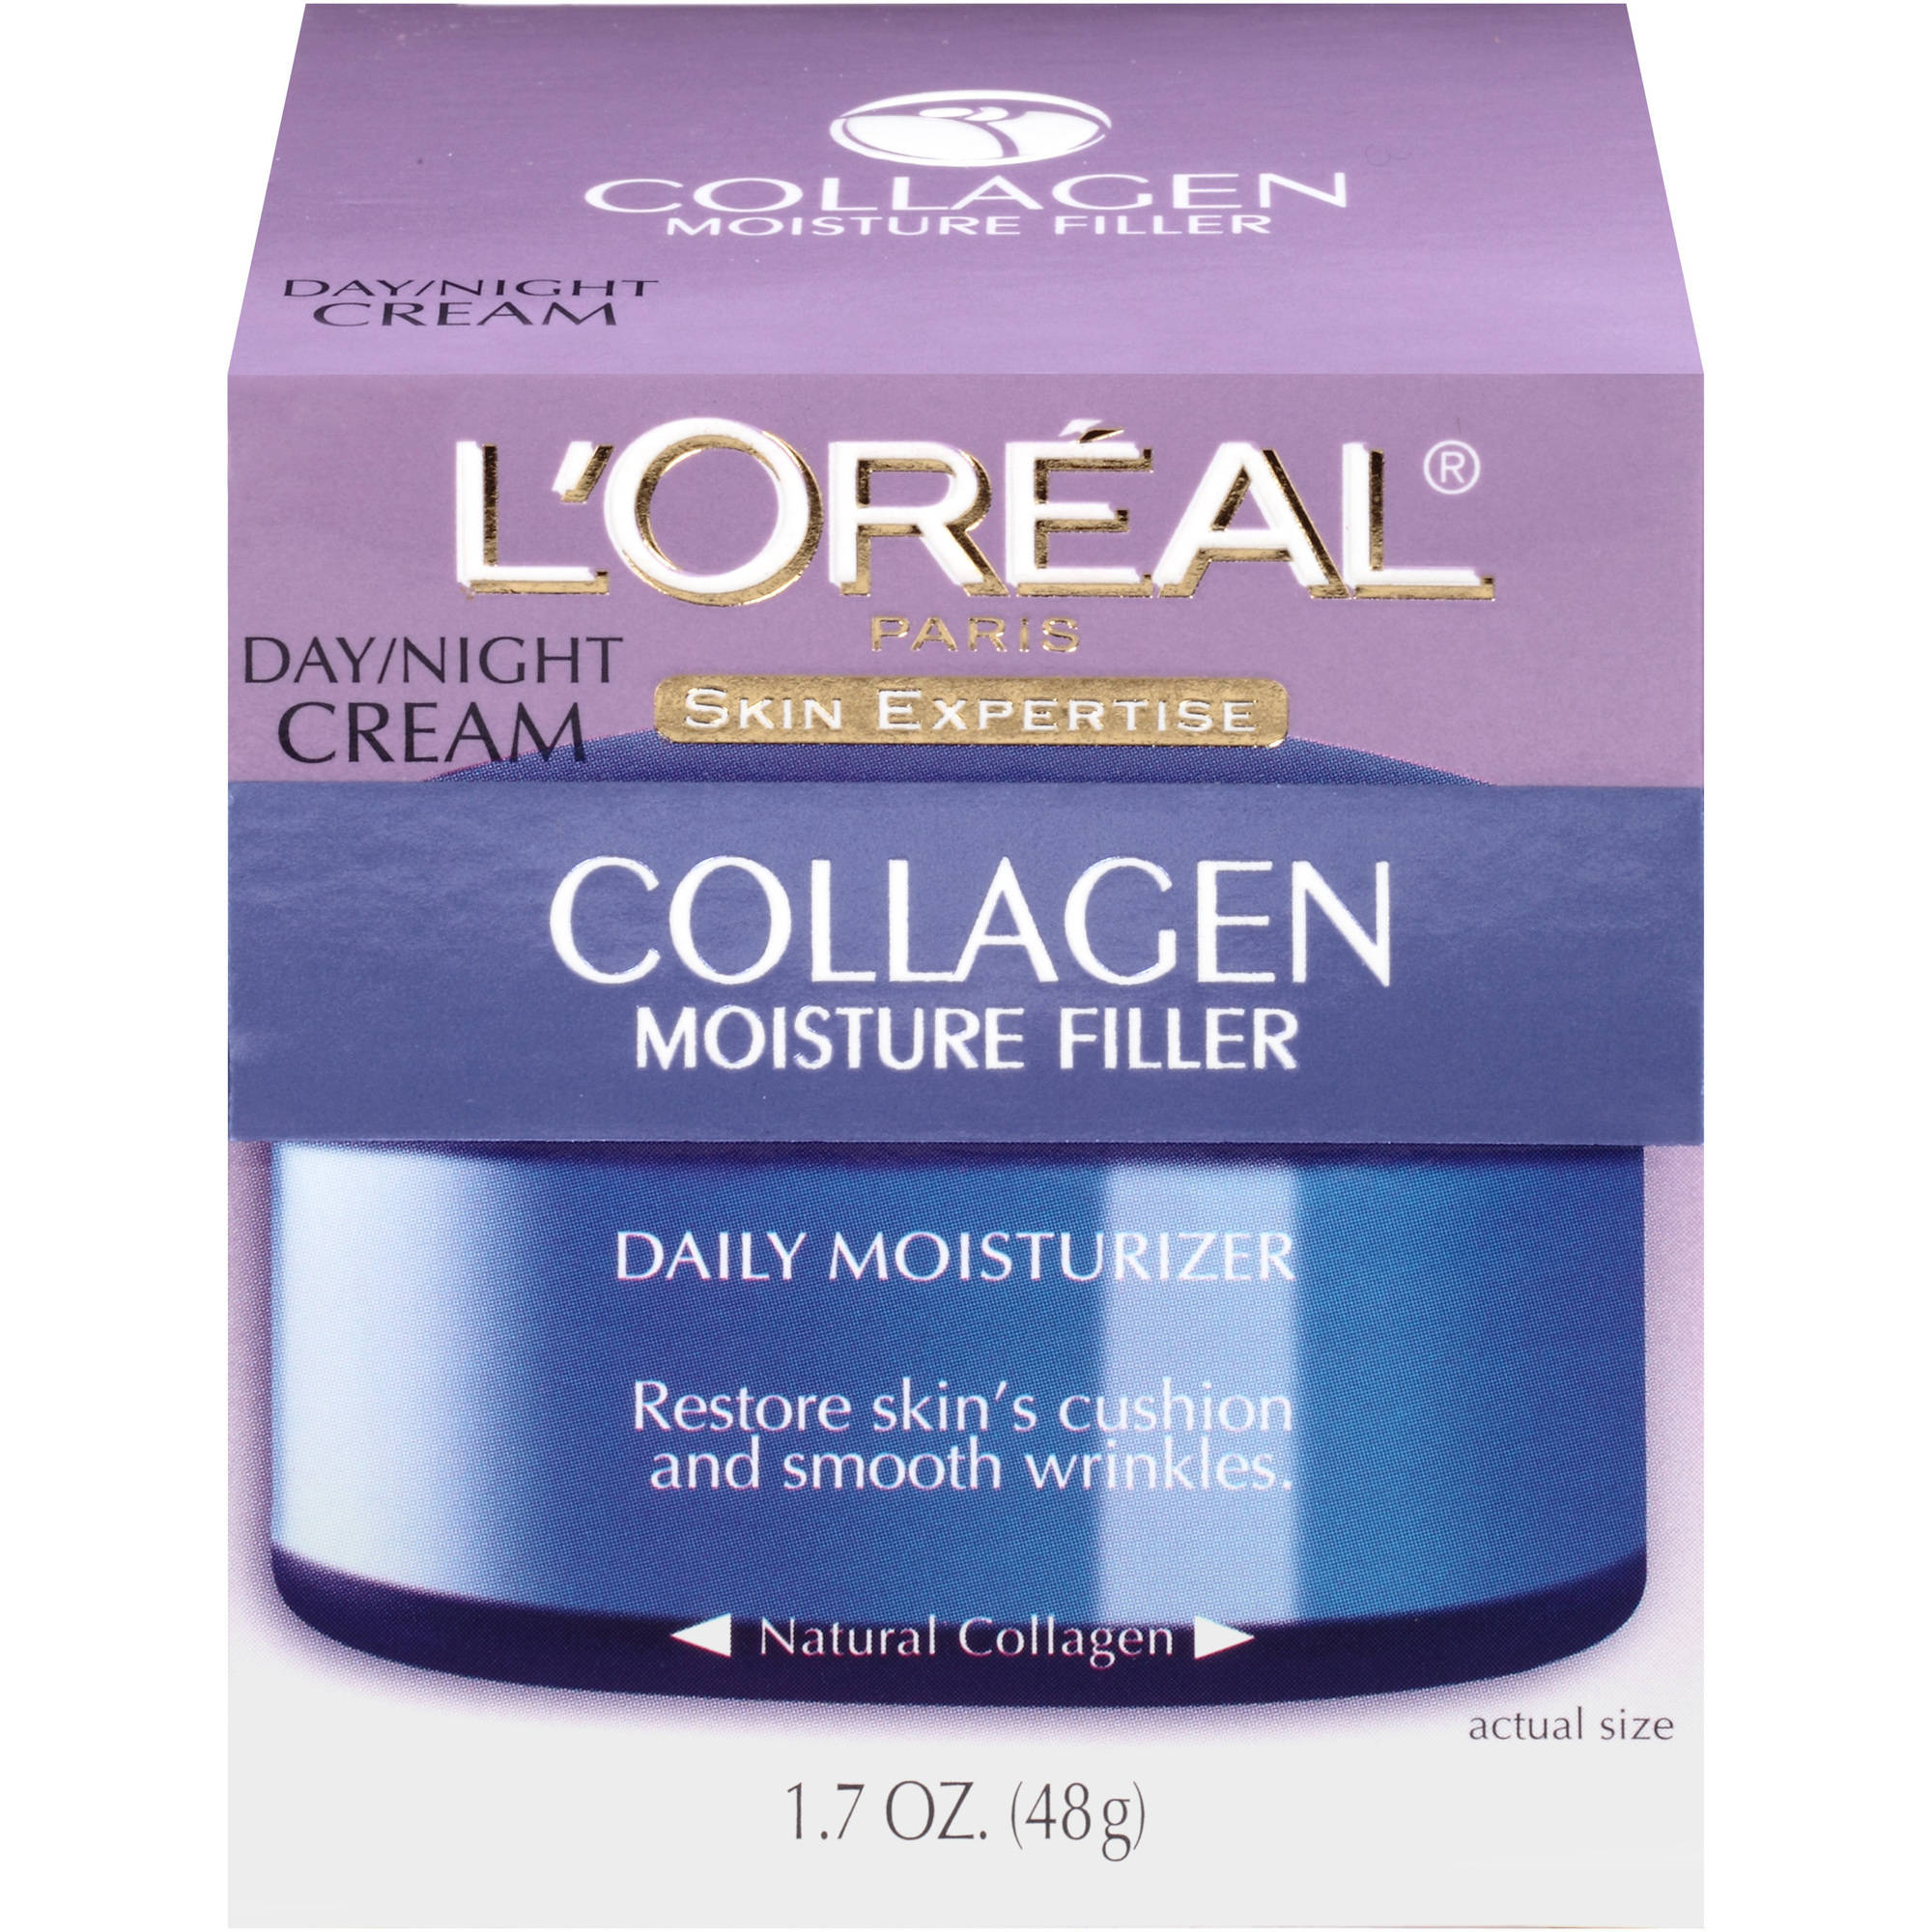 L'Oreal Paris Skin Expertise Collagen Filler Daily Moisturizer, 1.7oz